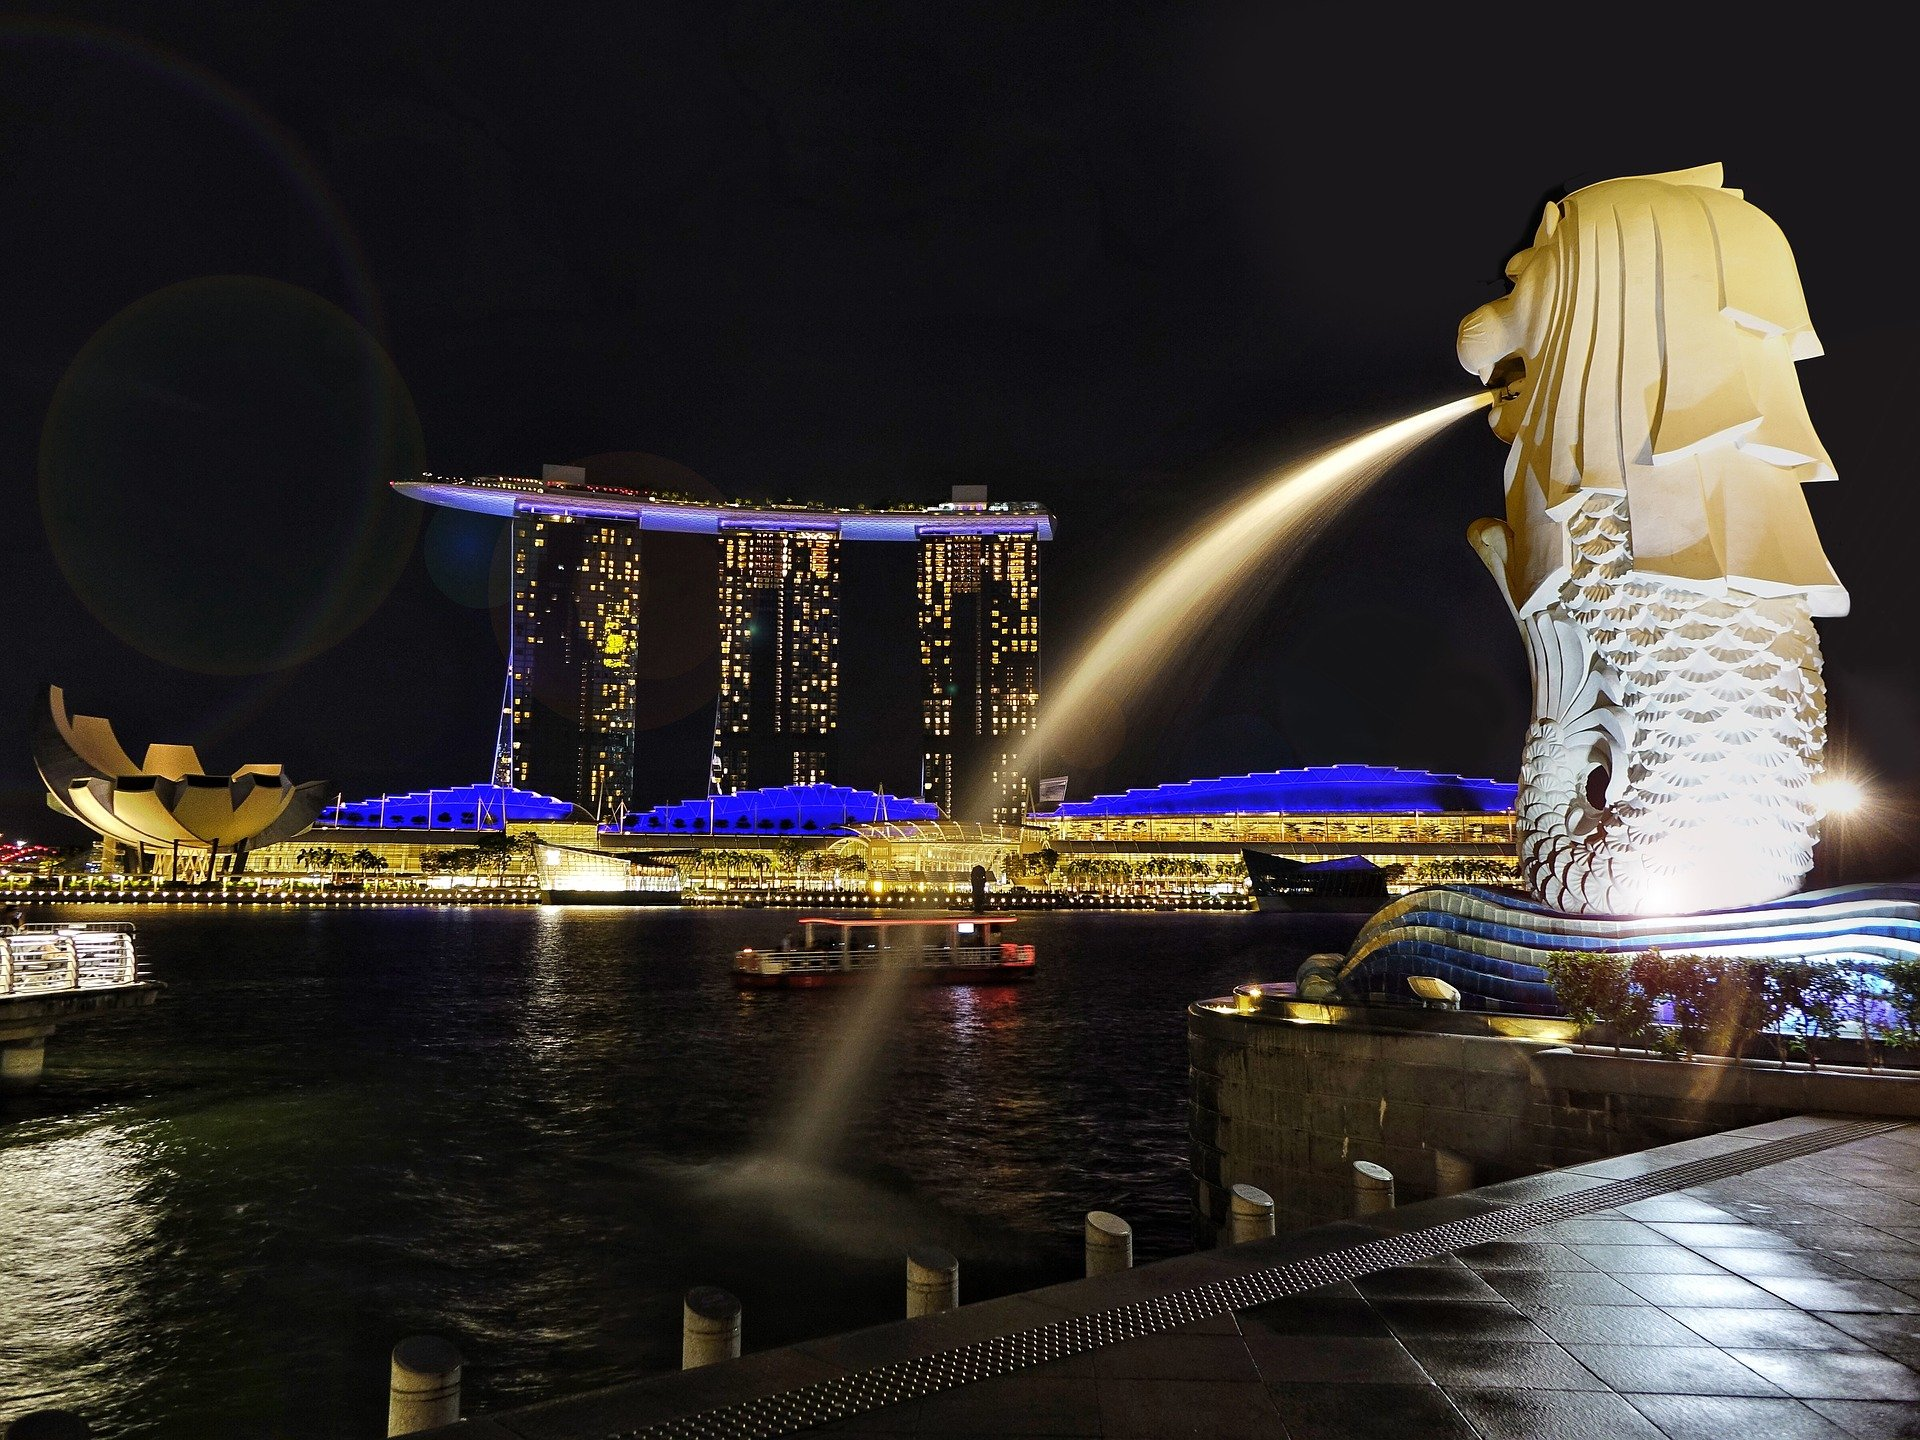 A Merlion in the bay